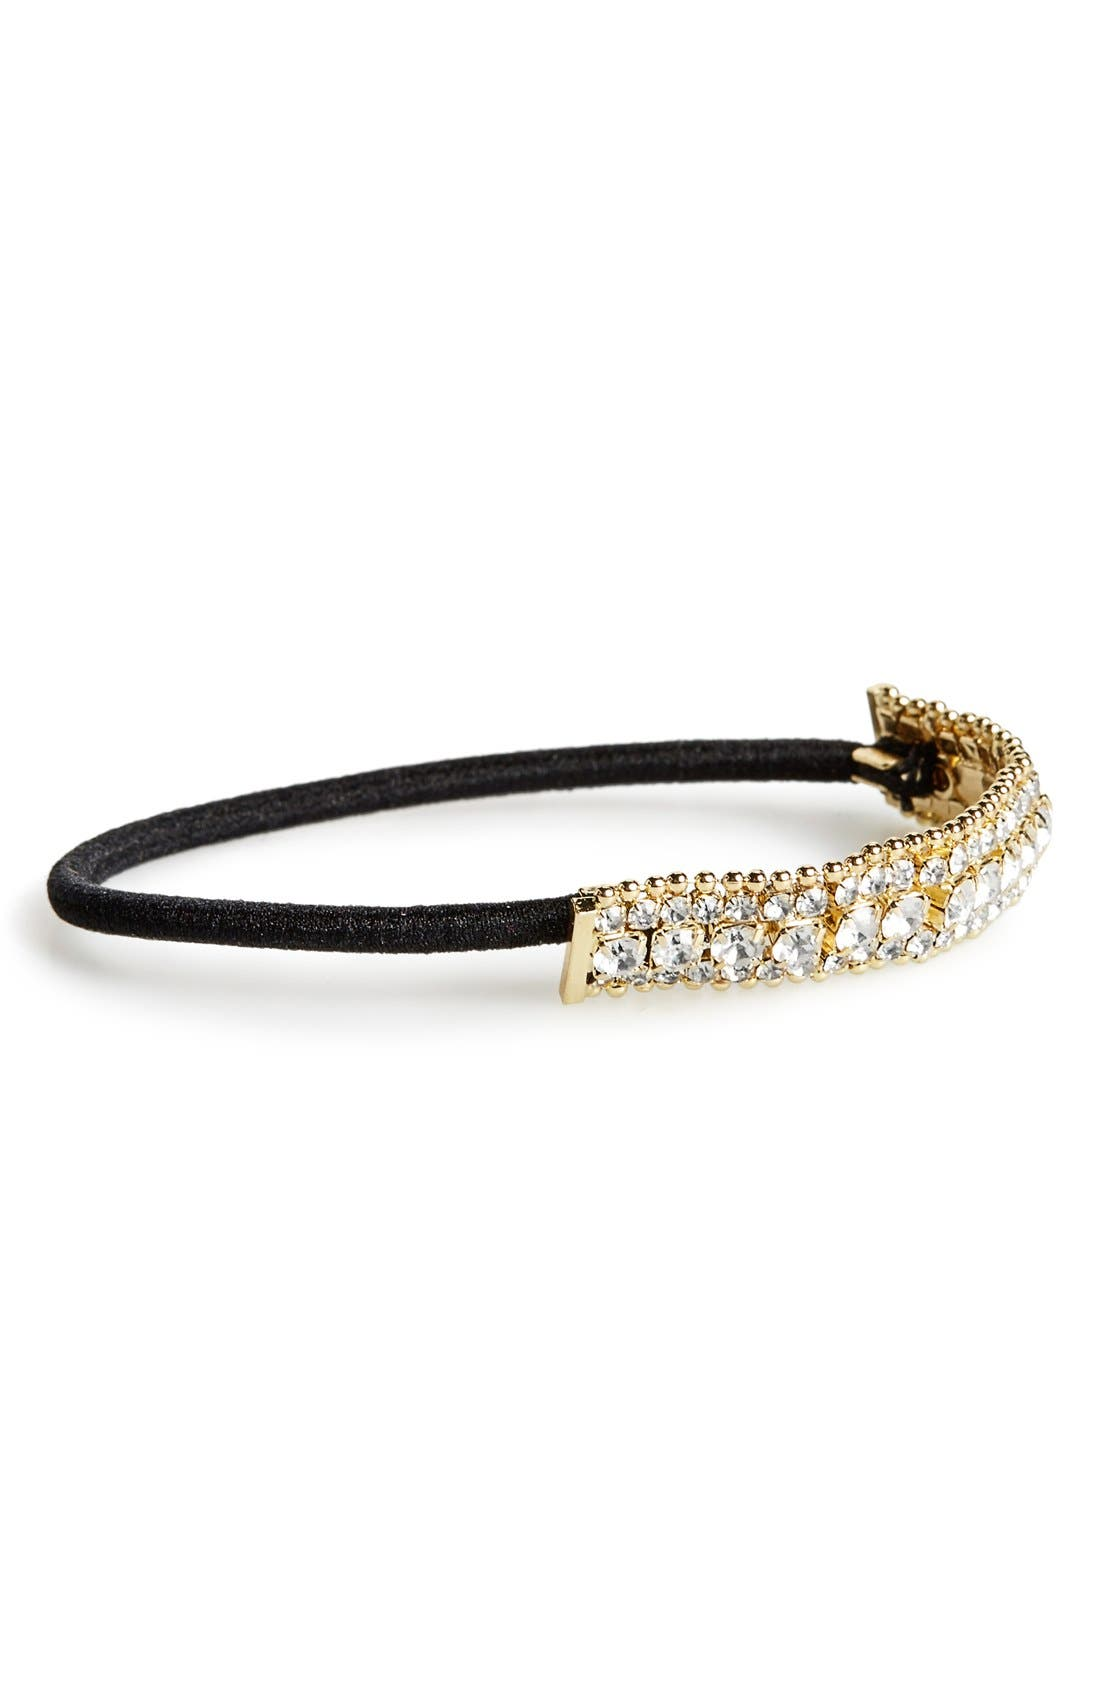 Main Image - Cara Crystal & Ball Chain Ponytail Holder